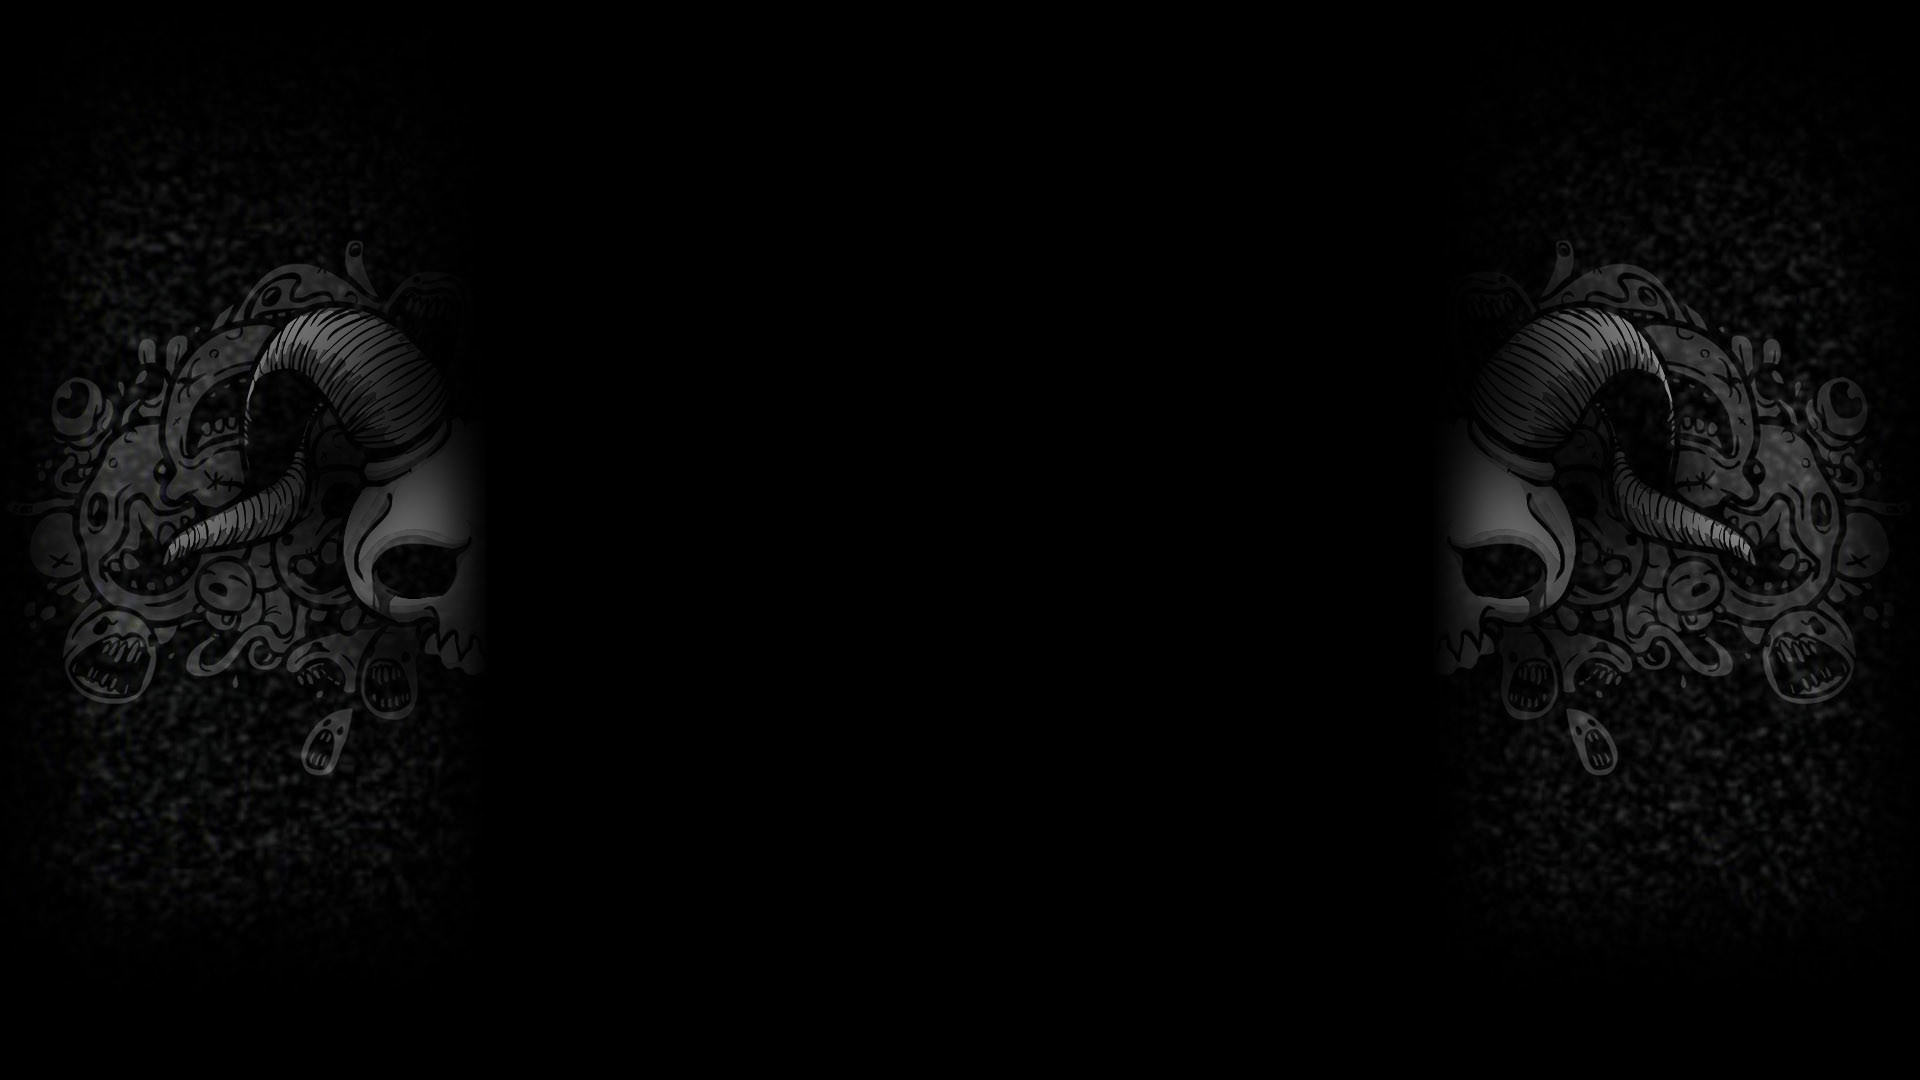 darkness background 68 images